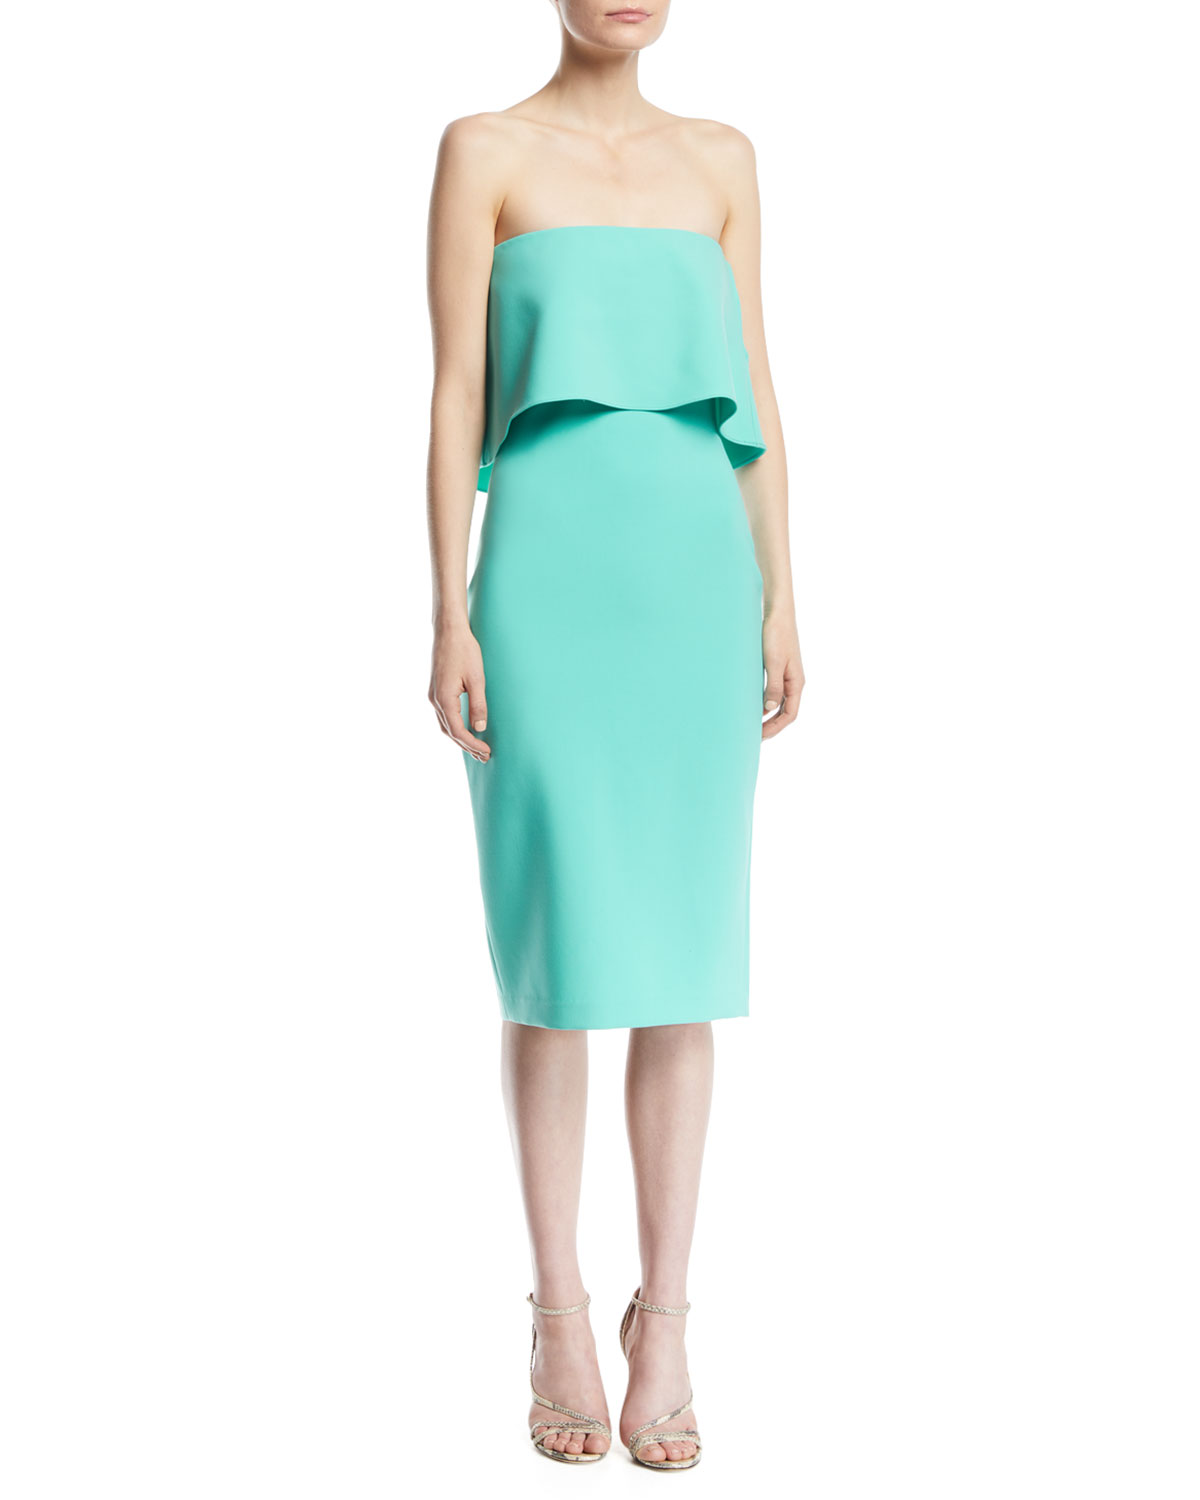 996fcb7429 Likely Driggs Dress